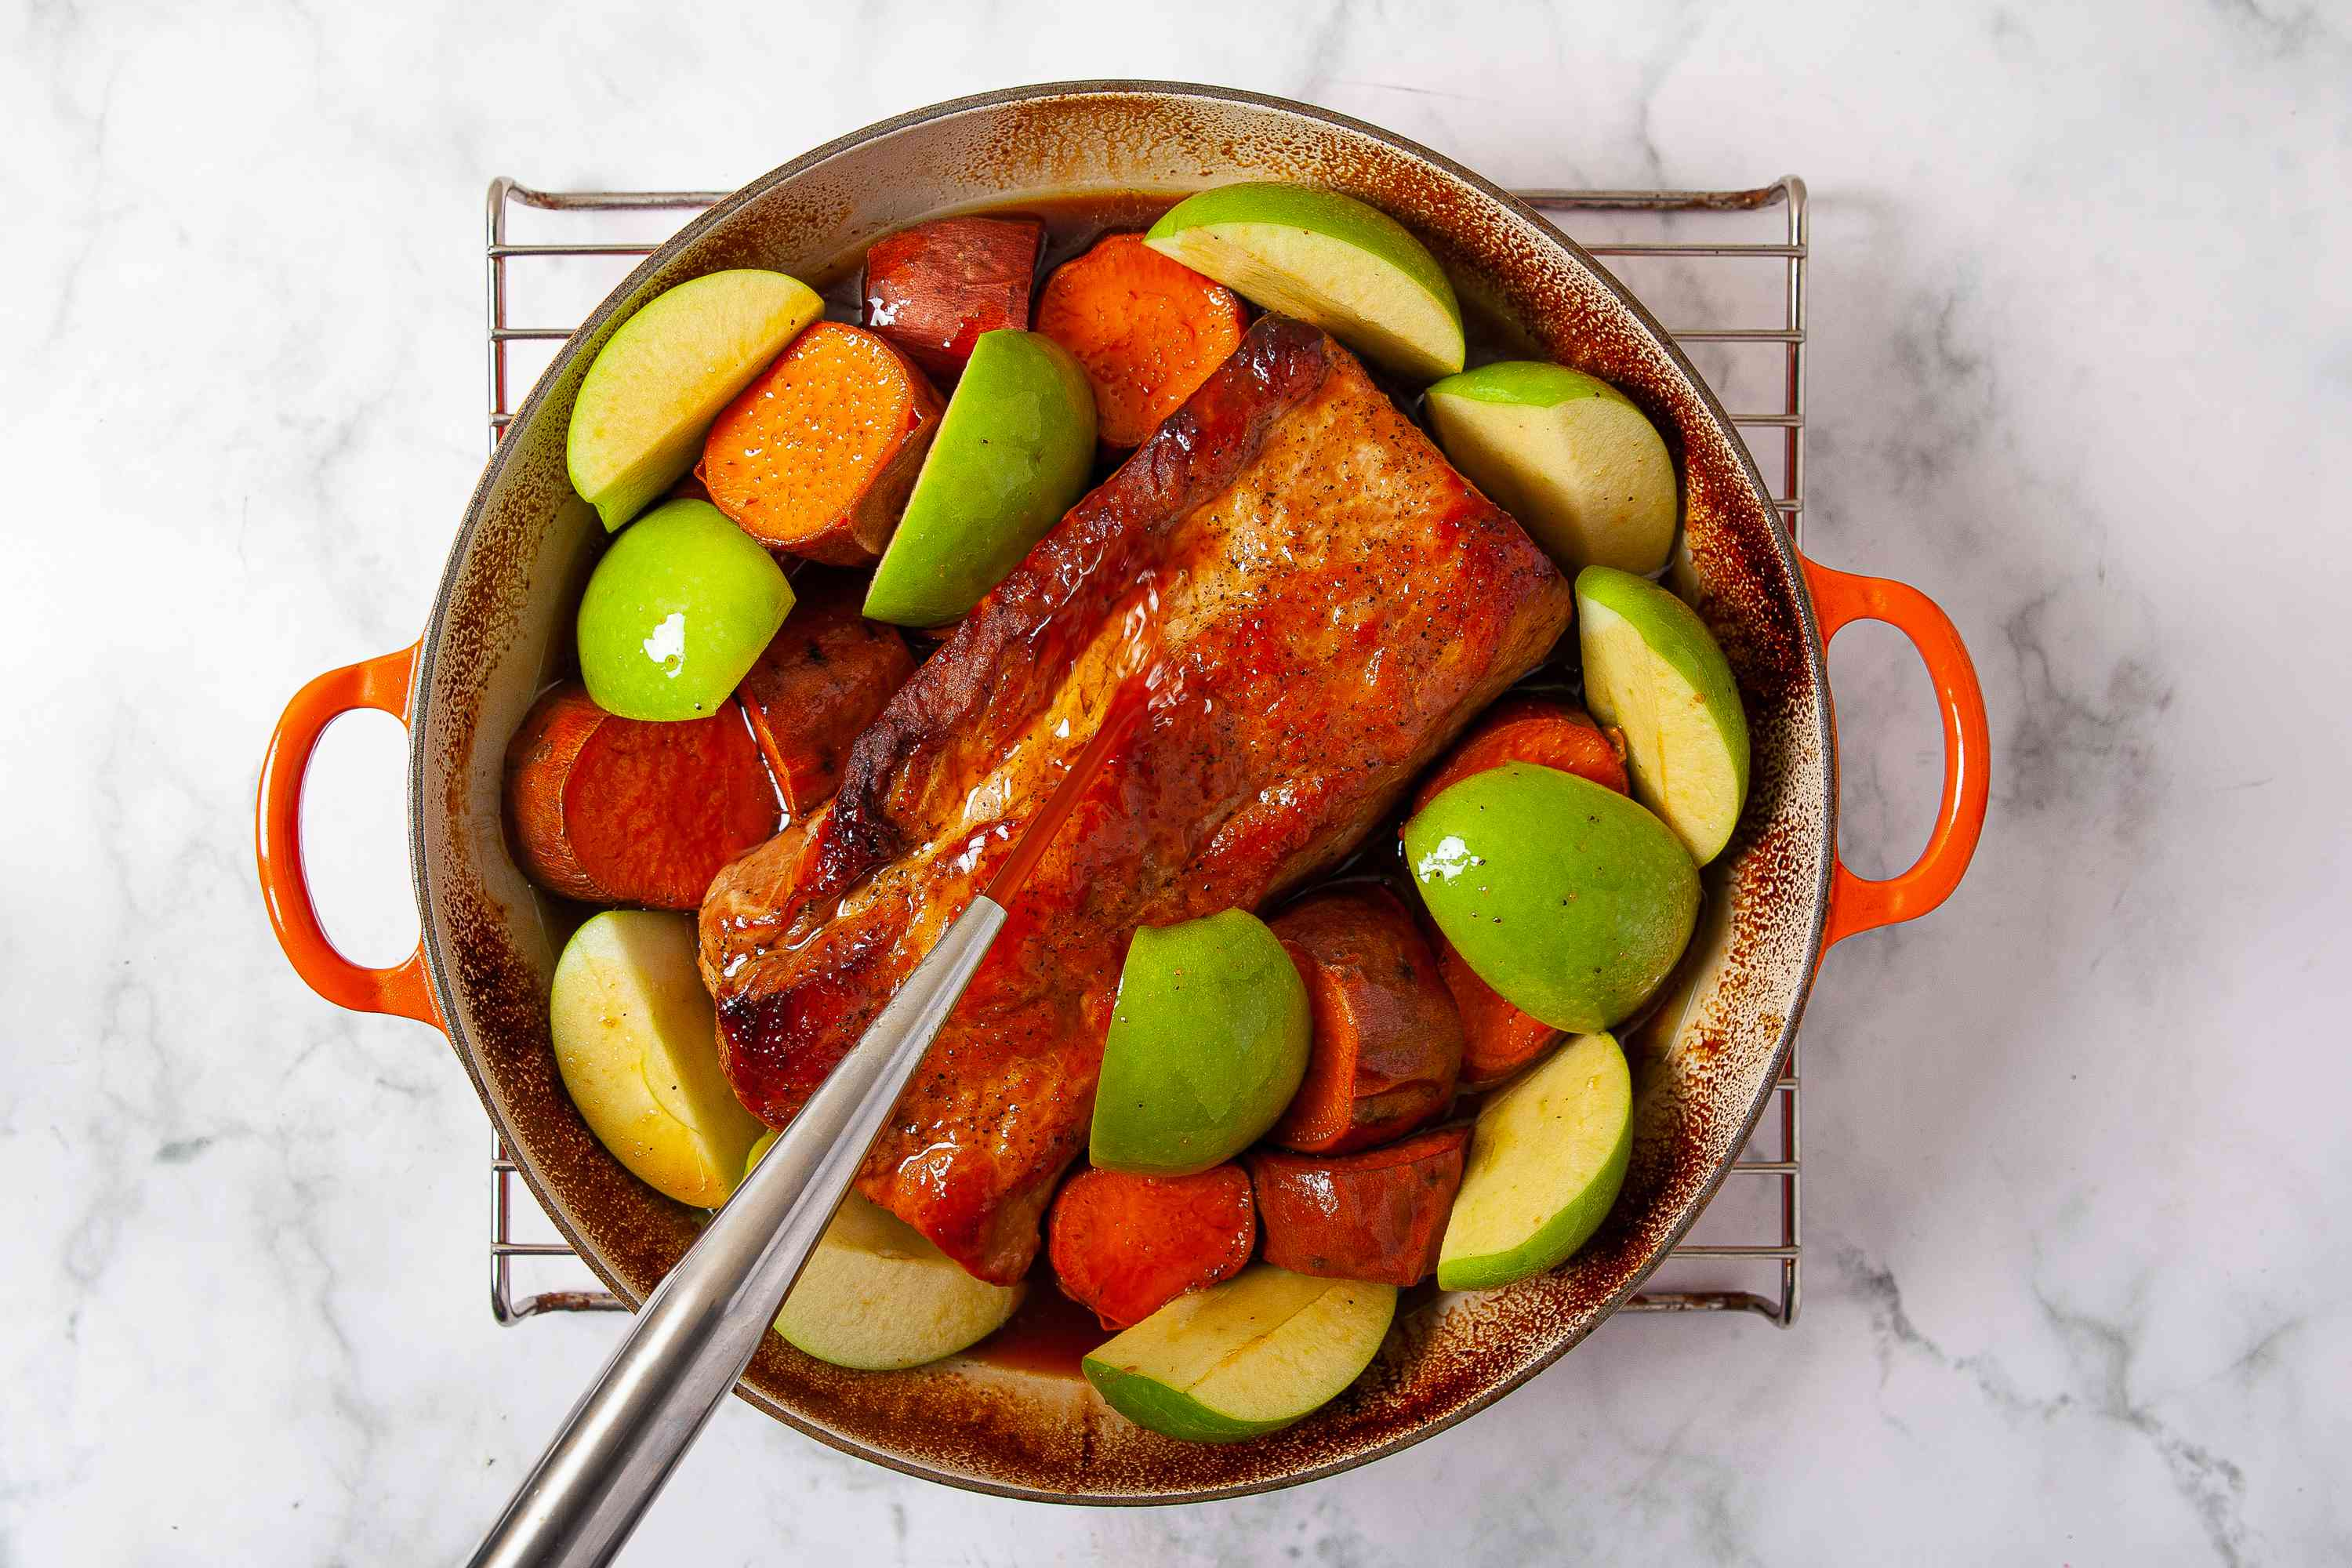 basting pork loin while it's cooking in a Dutch oven with apples and sweet potatoes